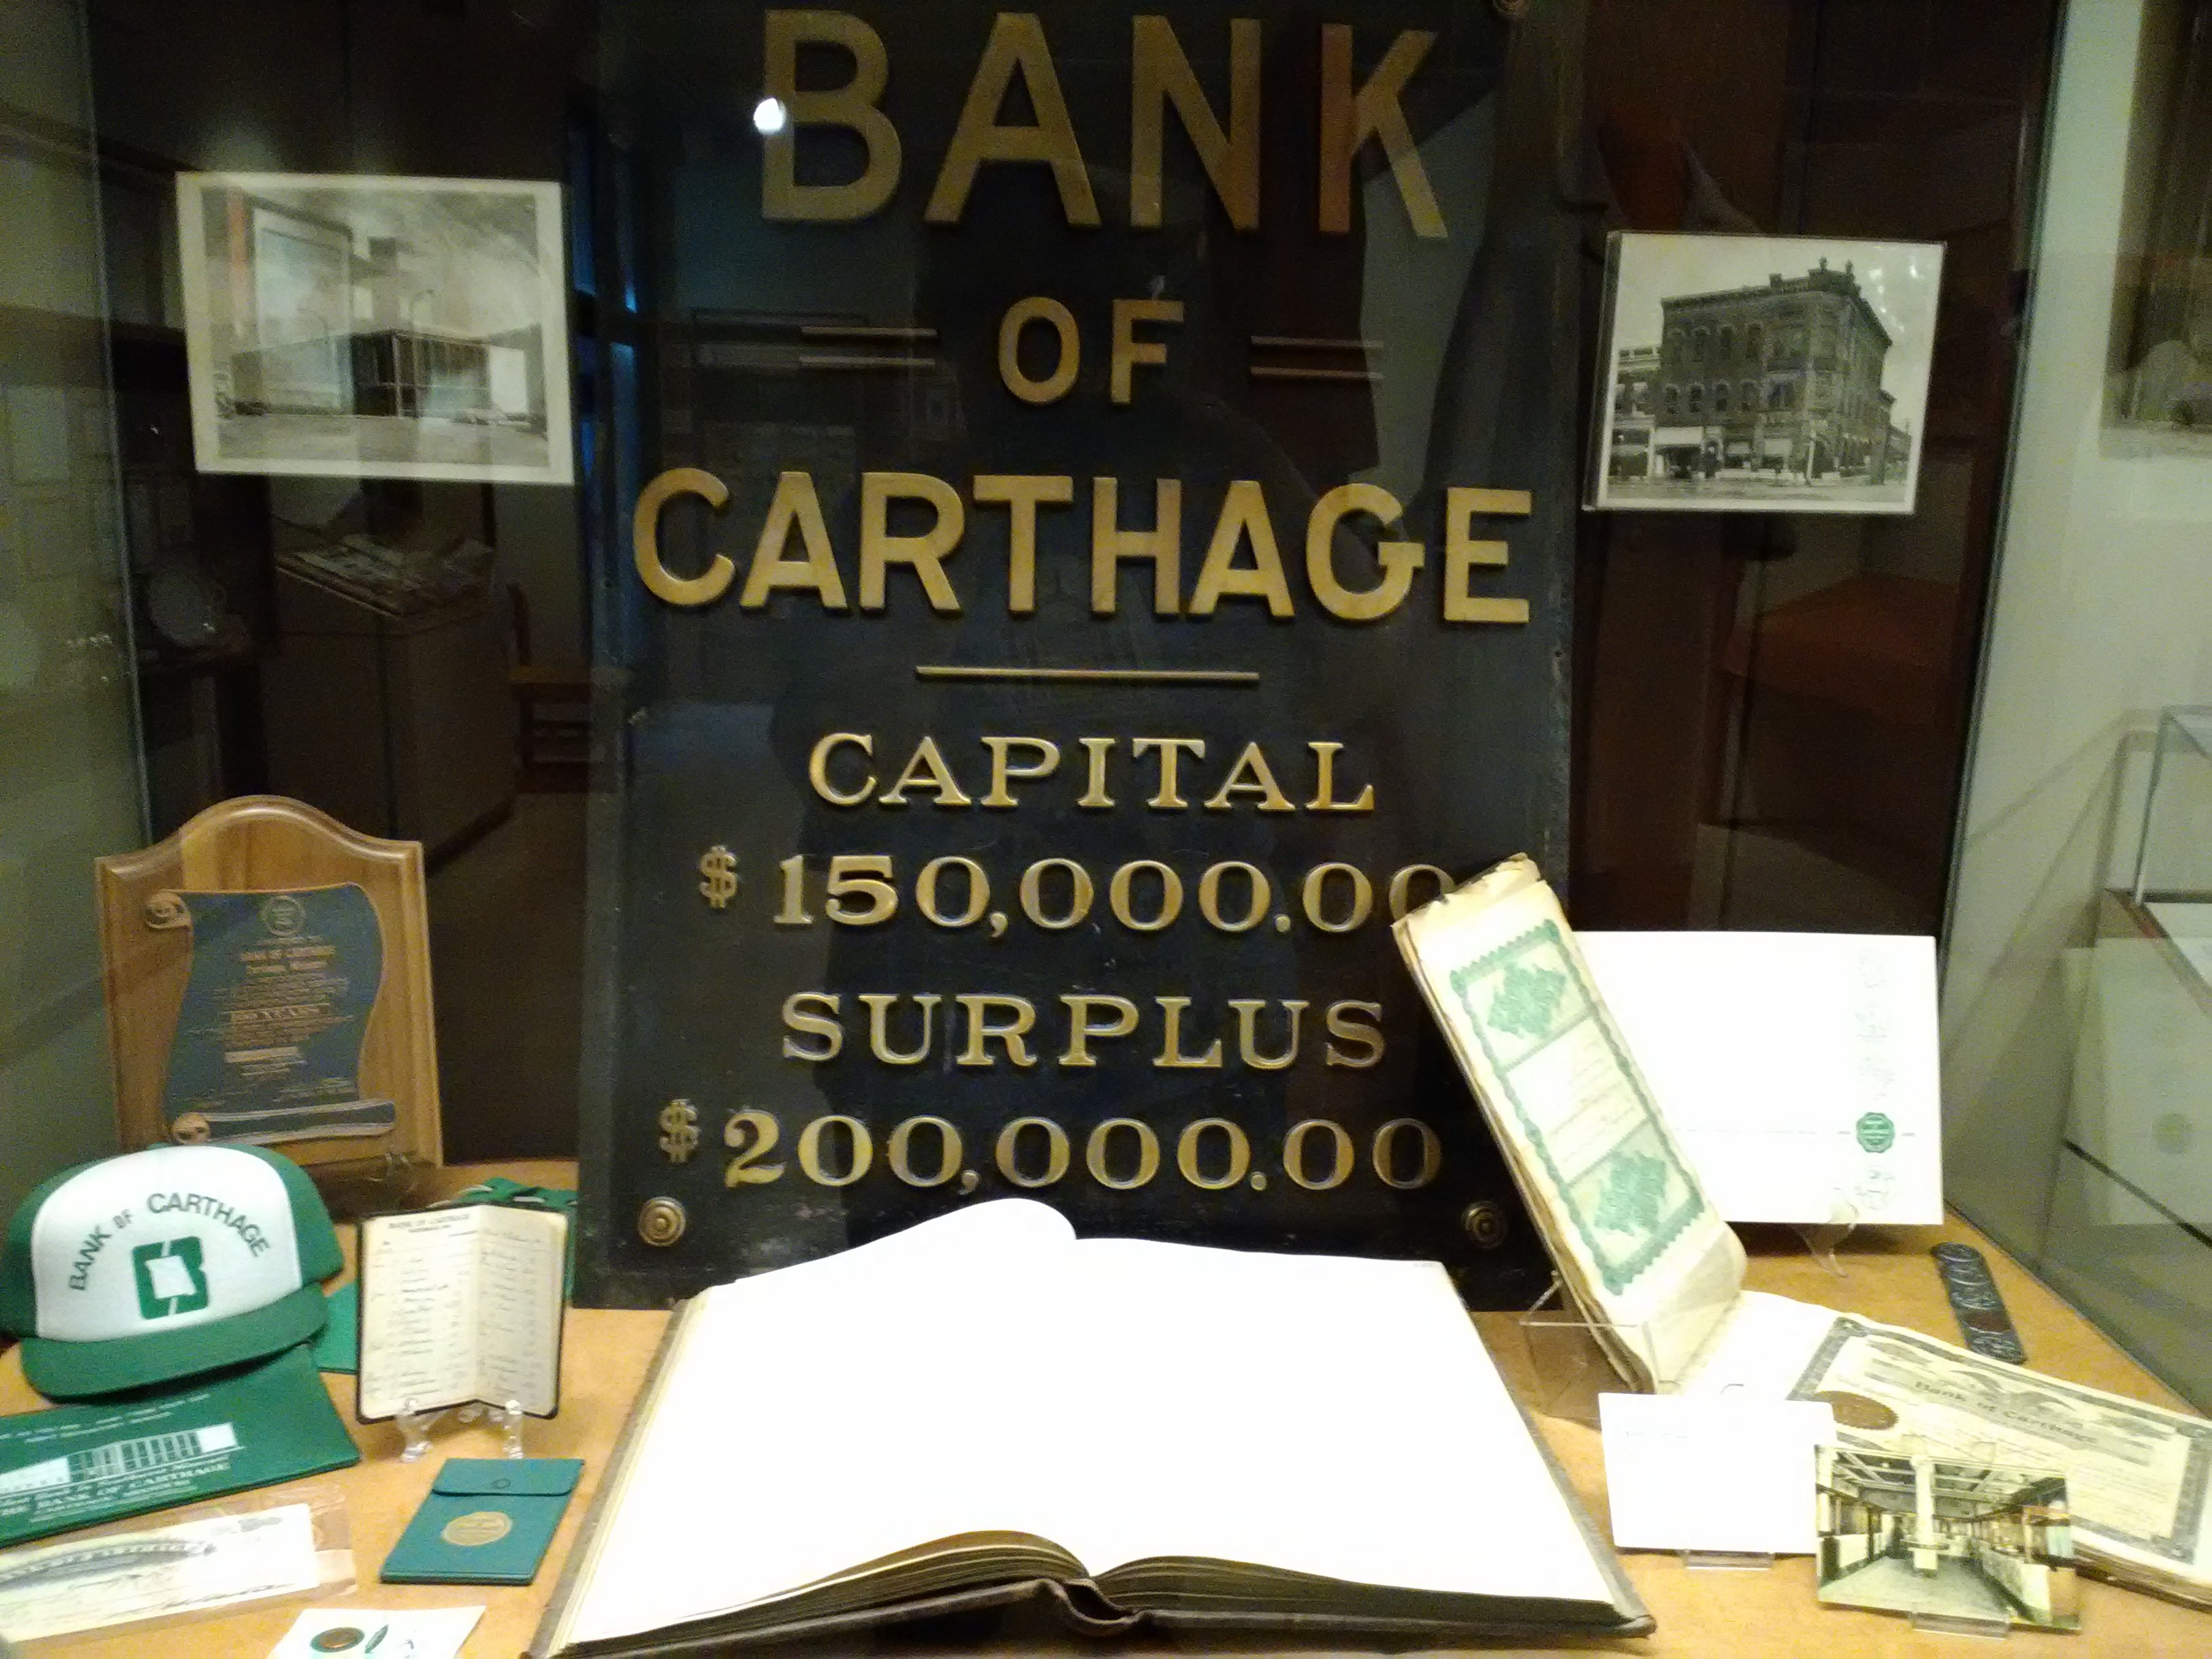 Bank of Carthage items including one of two building signs owned by the Powers Museum on display for the 175th Anniversary of Carthage Exhibit in 2017.